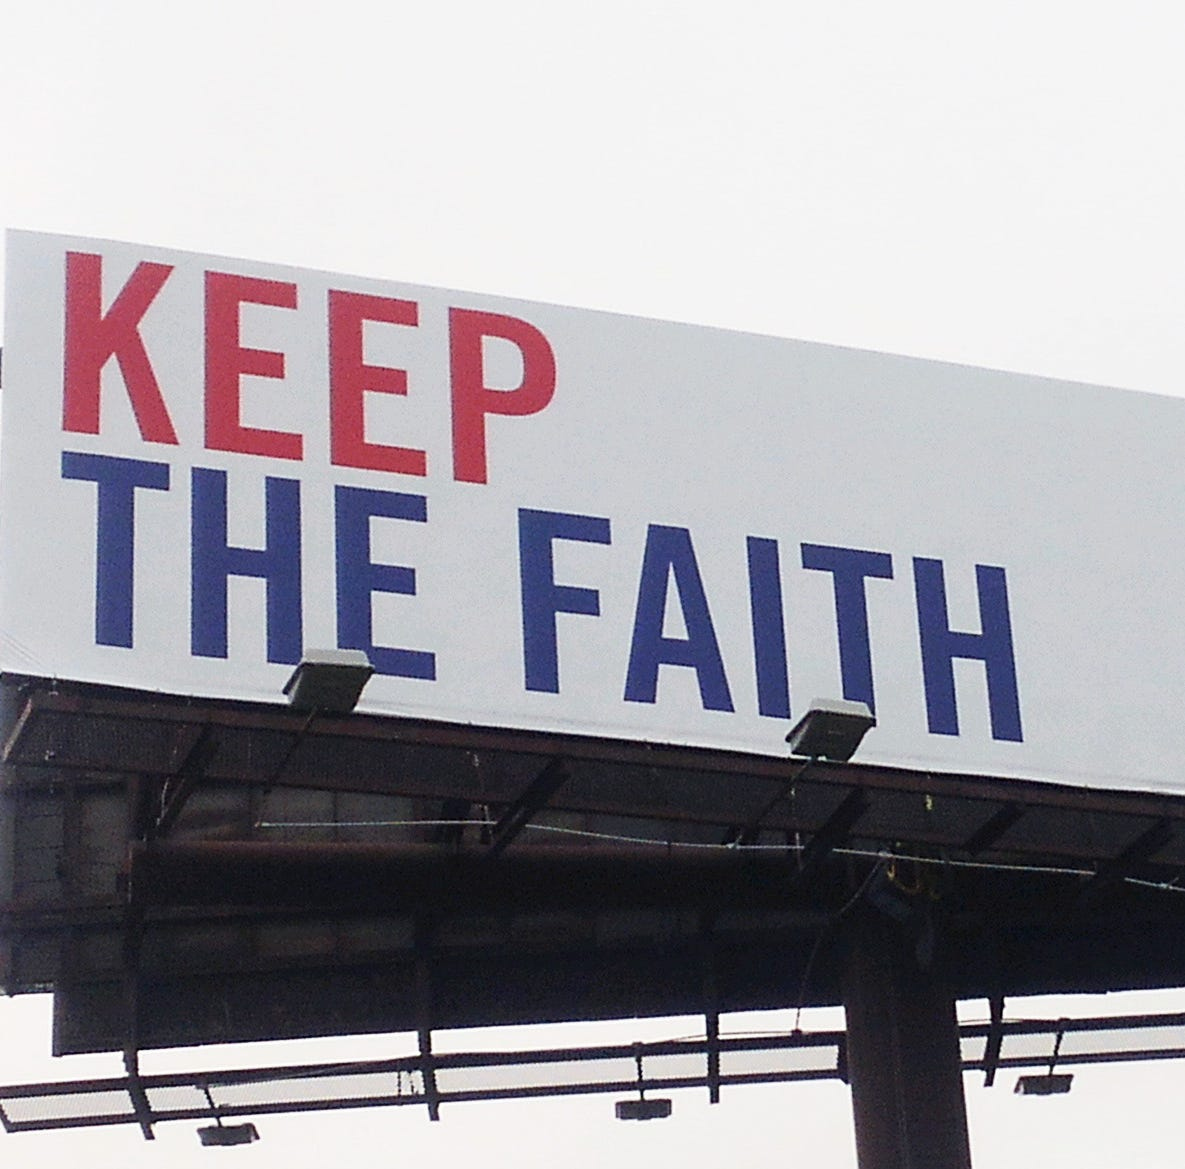 'A vote for science is a vote for creation': New Indiana religious billboard not what you expect